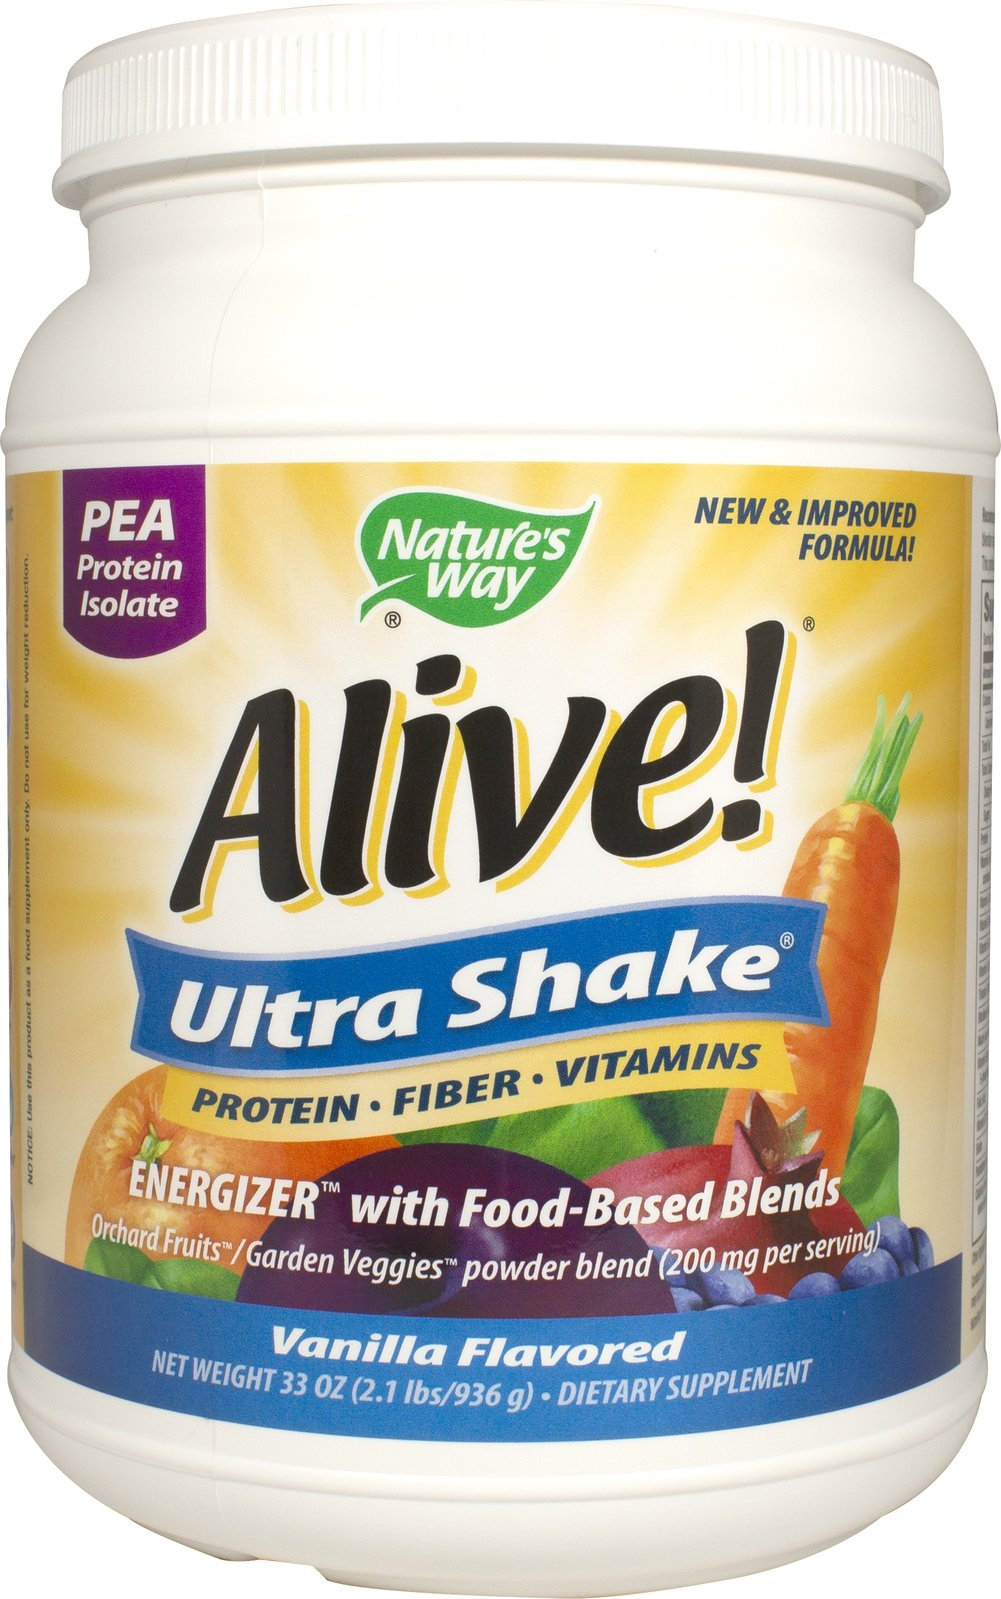 Pea Protein Vanilla <p>From the Manufacturer's Label:<br /><br />Alive! Ultra-Shake is nutrition you can feel - packed with vitamins, minerals, fruits, vegetables, protein, fiber, green foods, omega 3/6/9 fatty acids, mushrooms, antioxidants, enzymes and more!  Alive! Ultra-Shake contains easy-to-digest pea protein isolate complete with 18 amino acids, plus a lower allergen potential than soy or whey sources.<br /><br />Manufactured by Nature's Way.